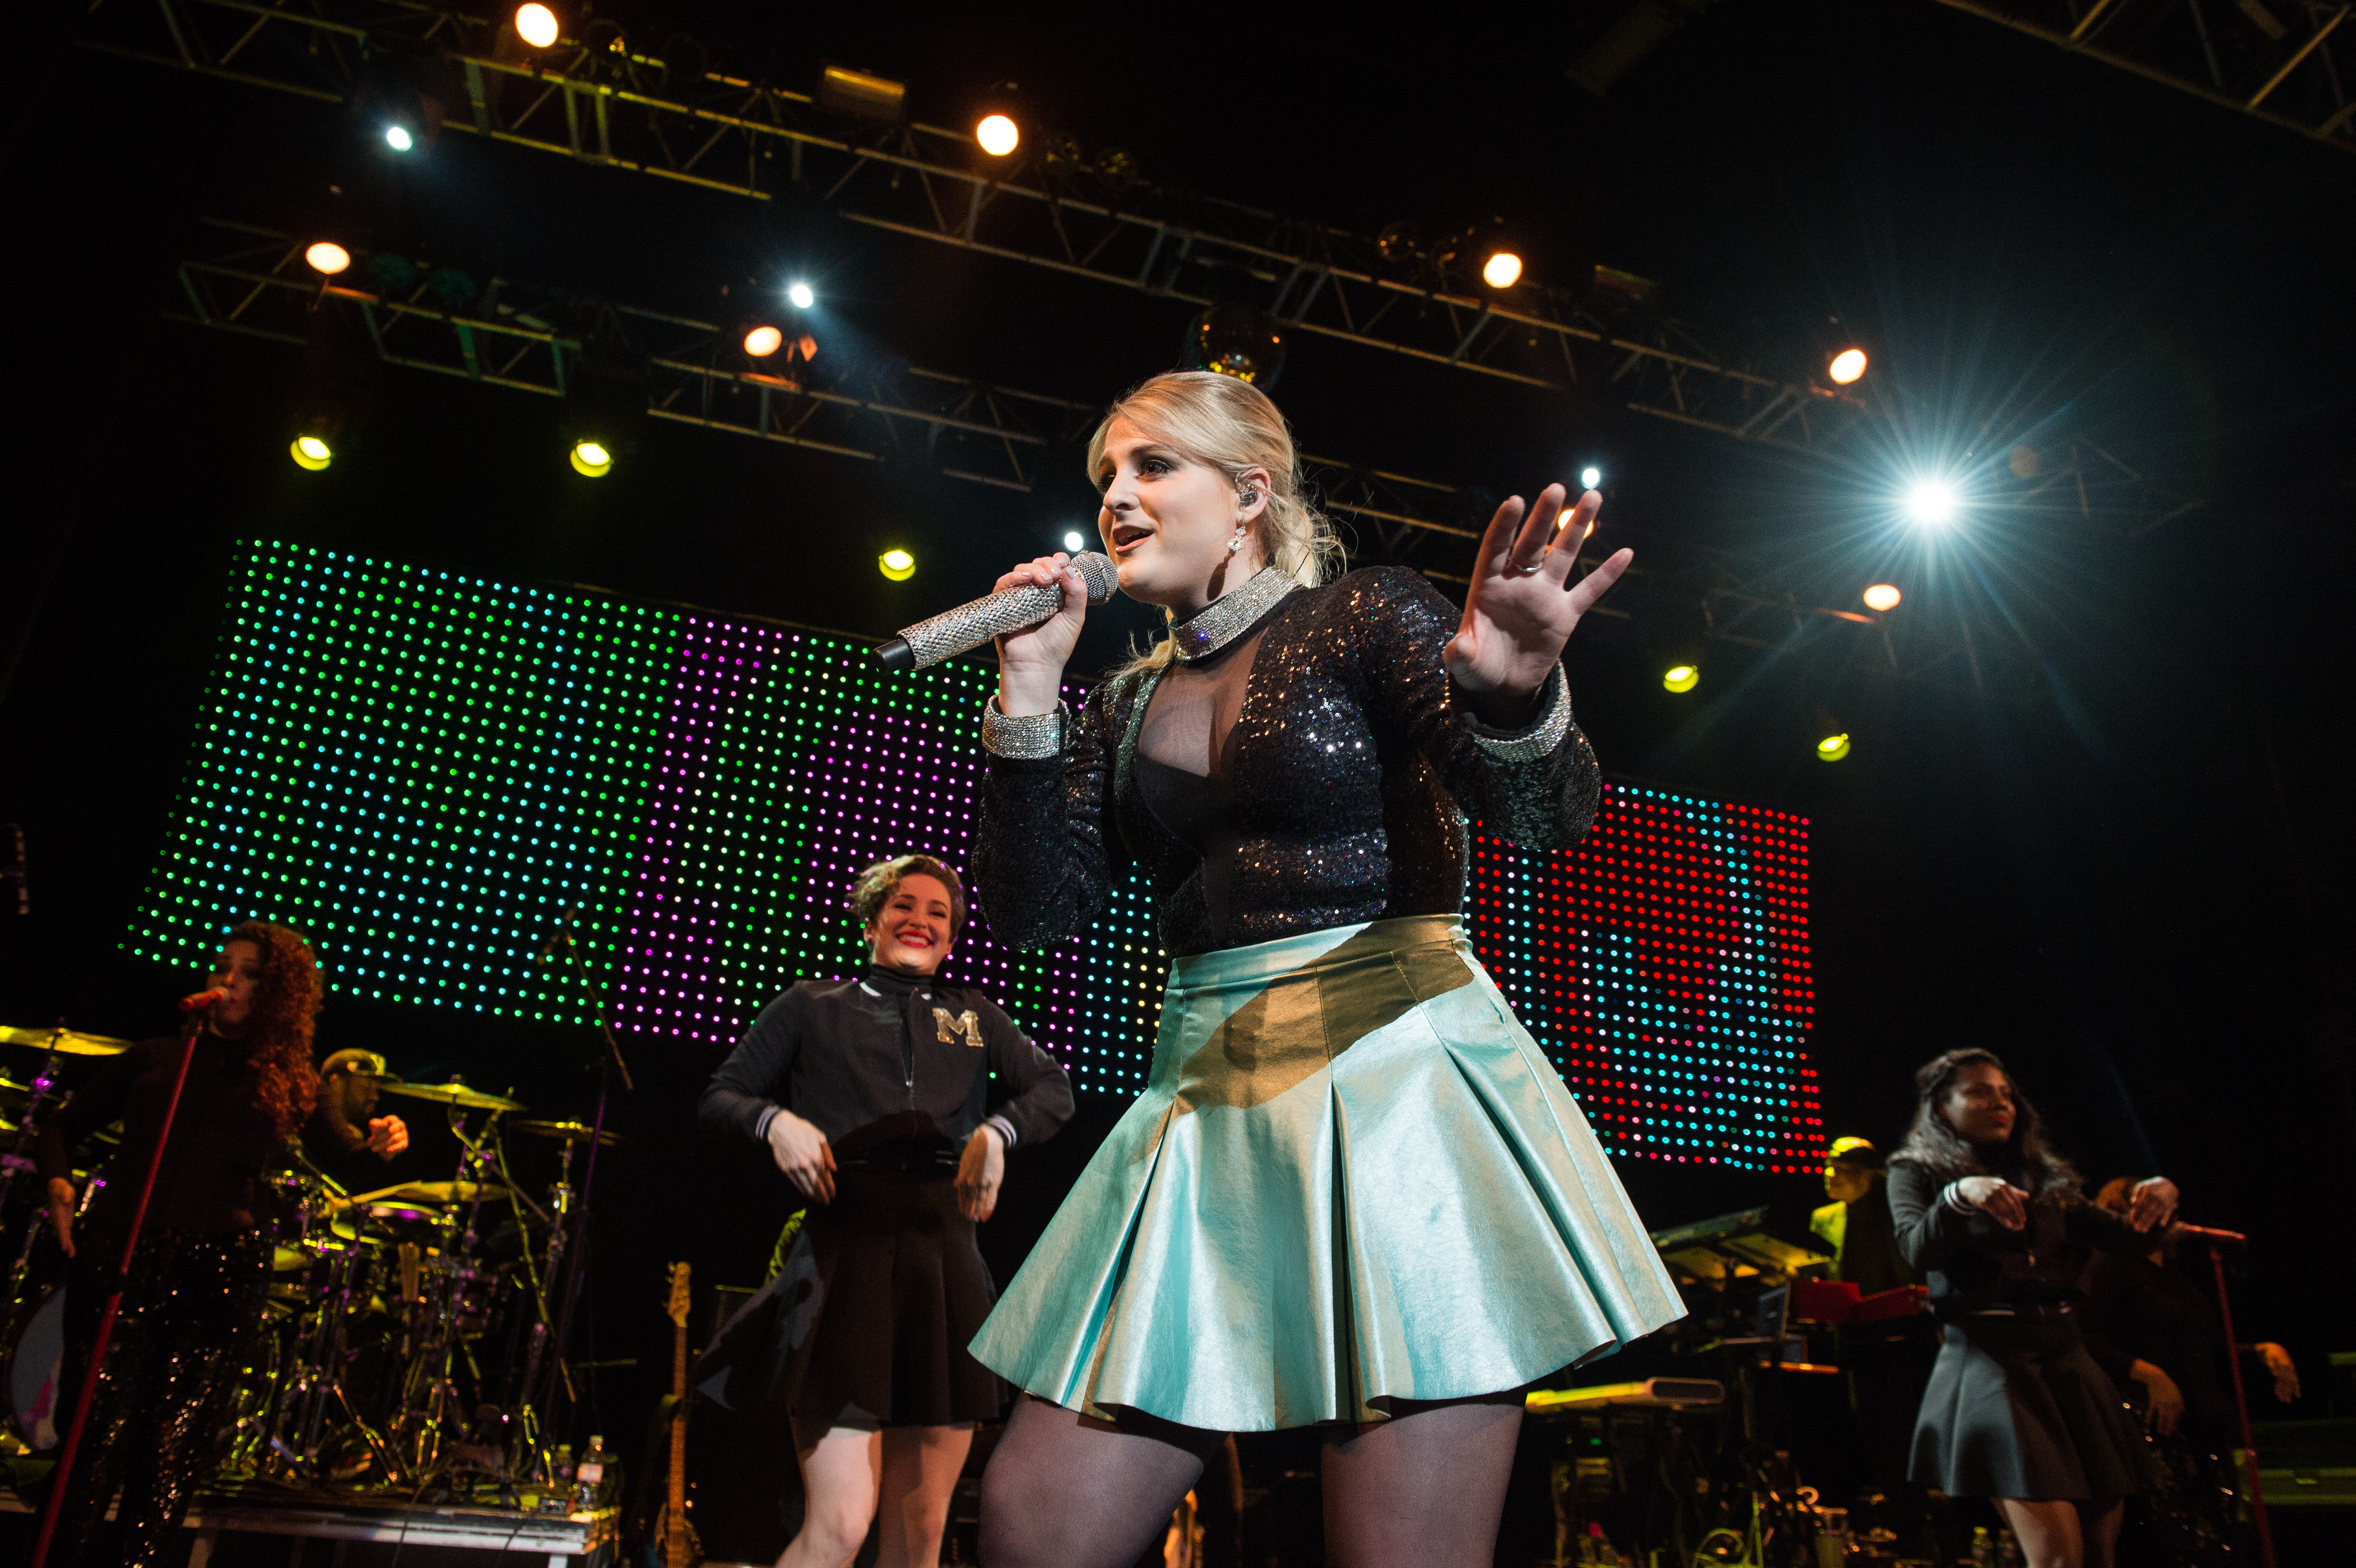 Meghan Trainor performs at Le Trianon on May 28, 2015 in Paris, France.